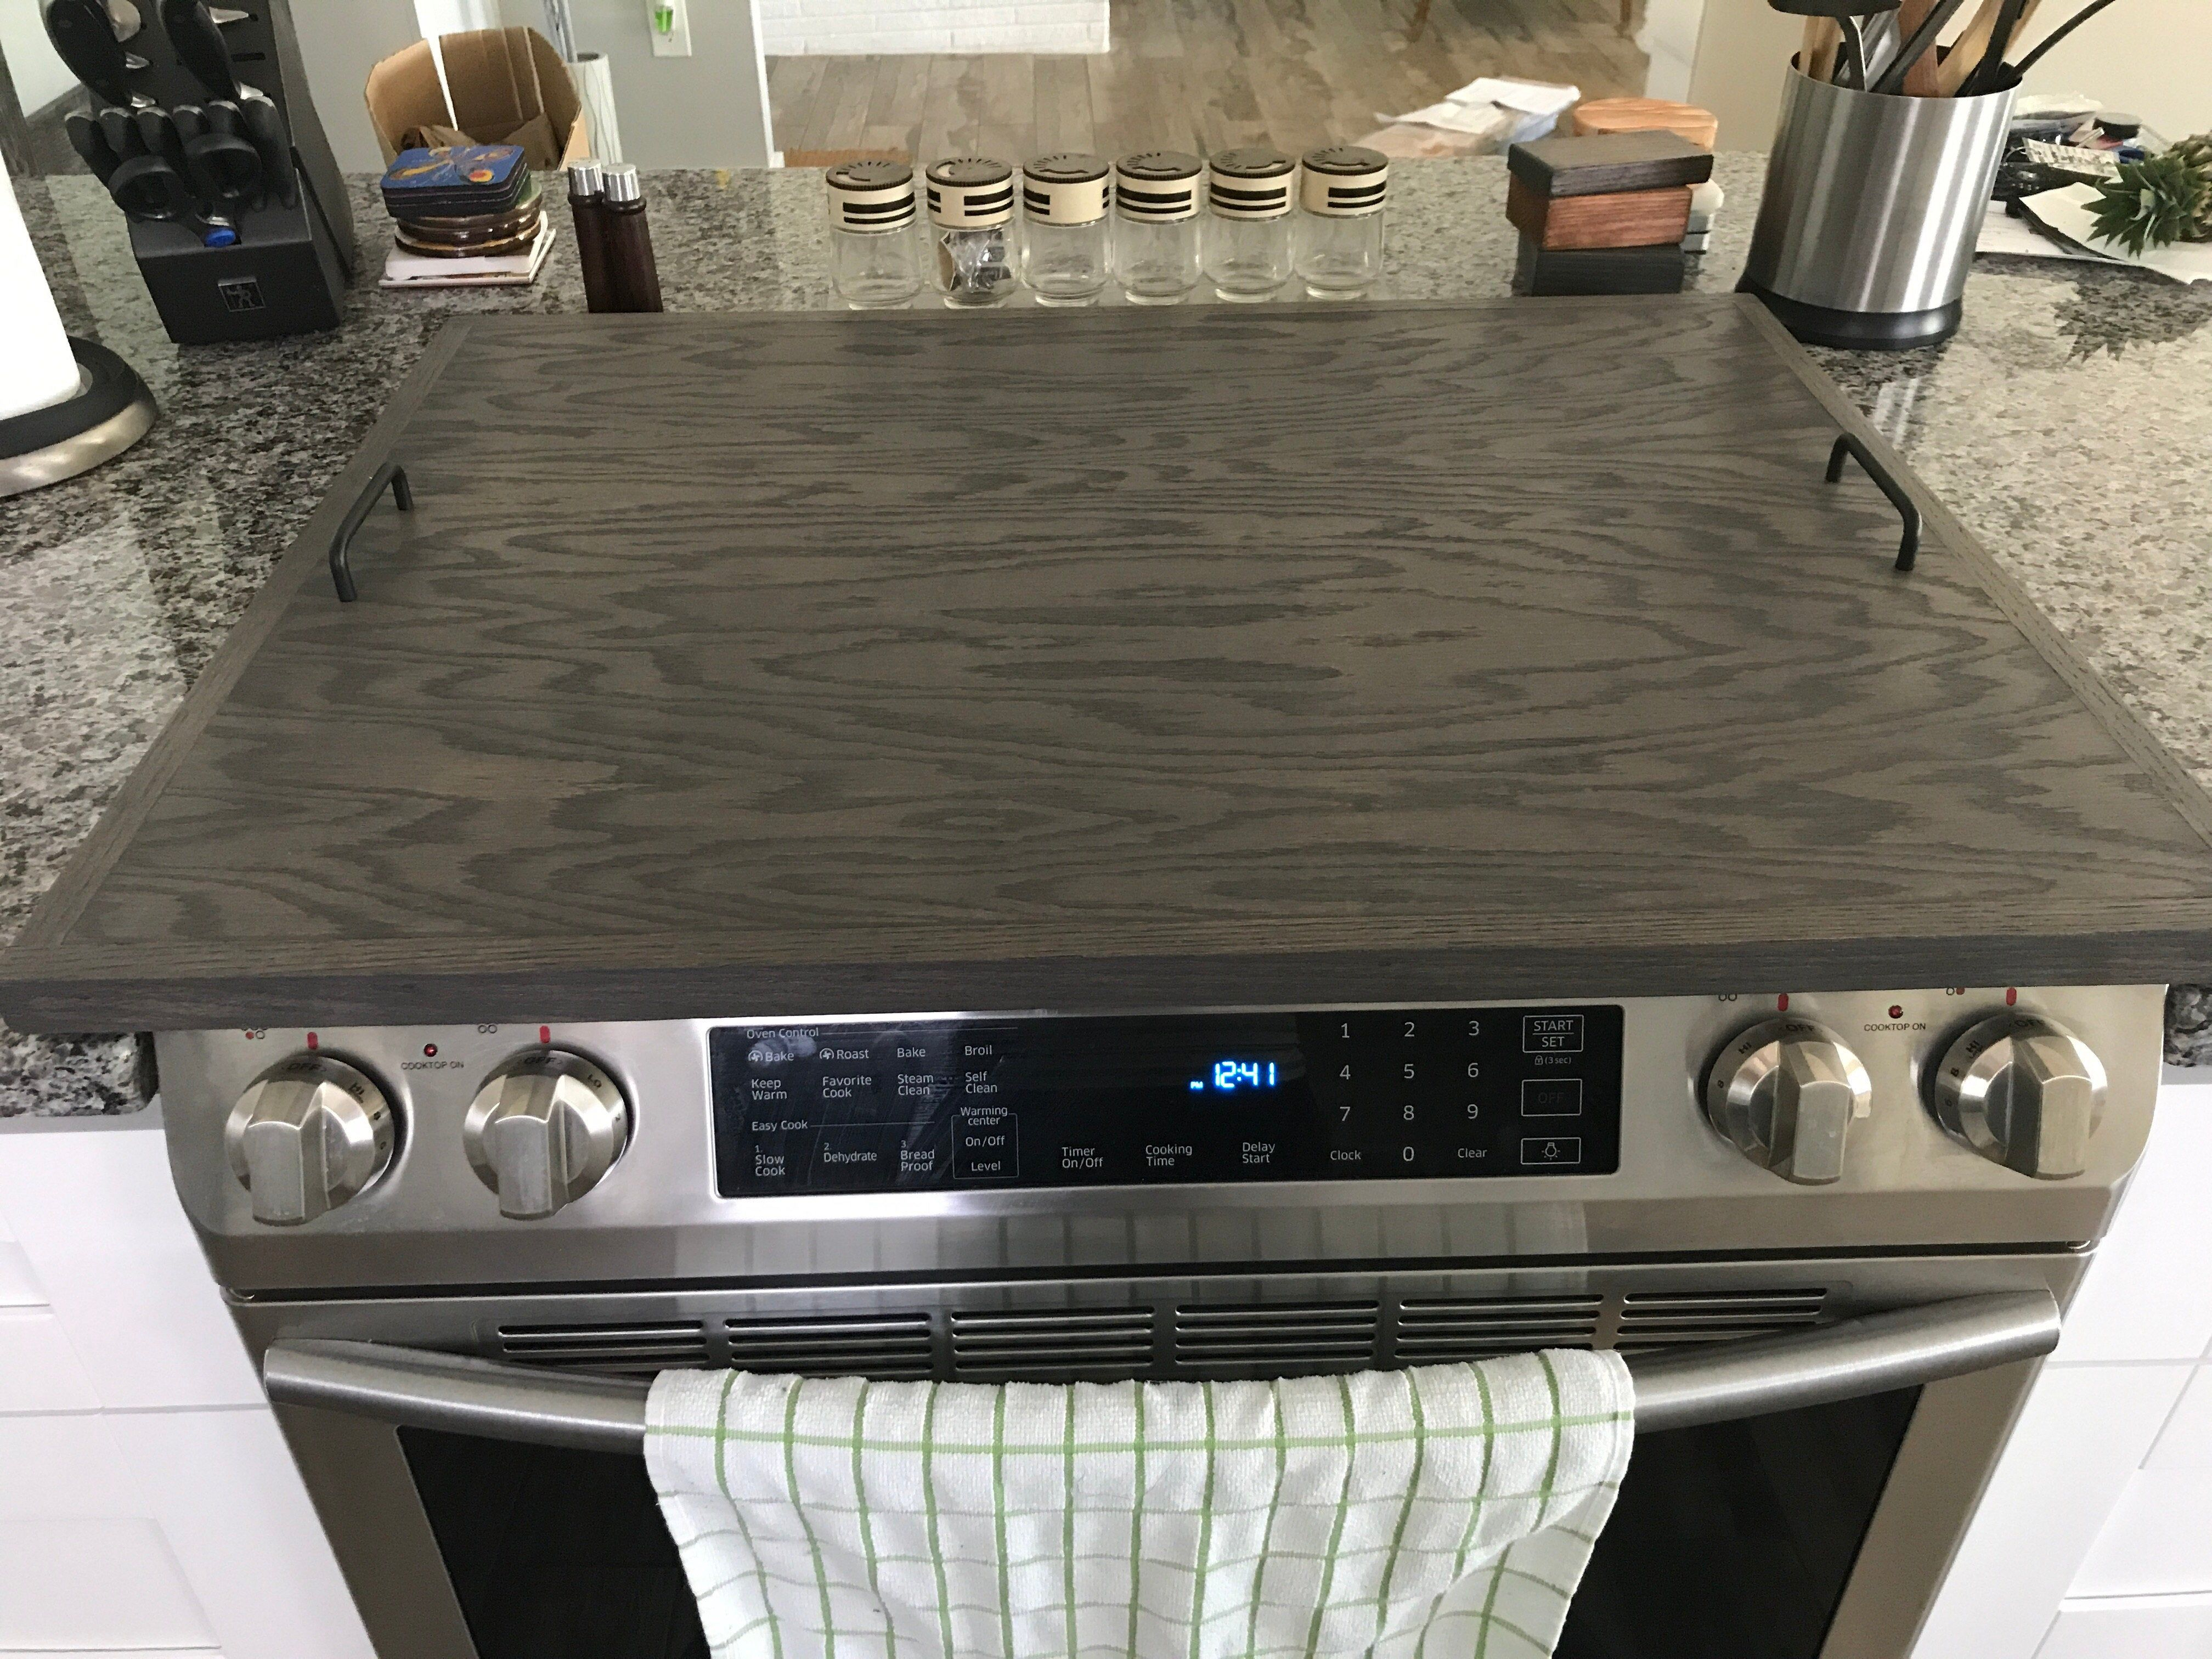 Oak Stove Top Cover In 2020 Stove Top Cover Wooden Stove Top